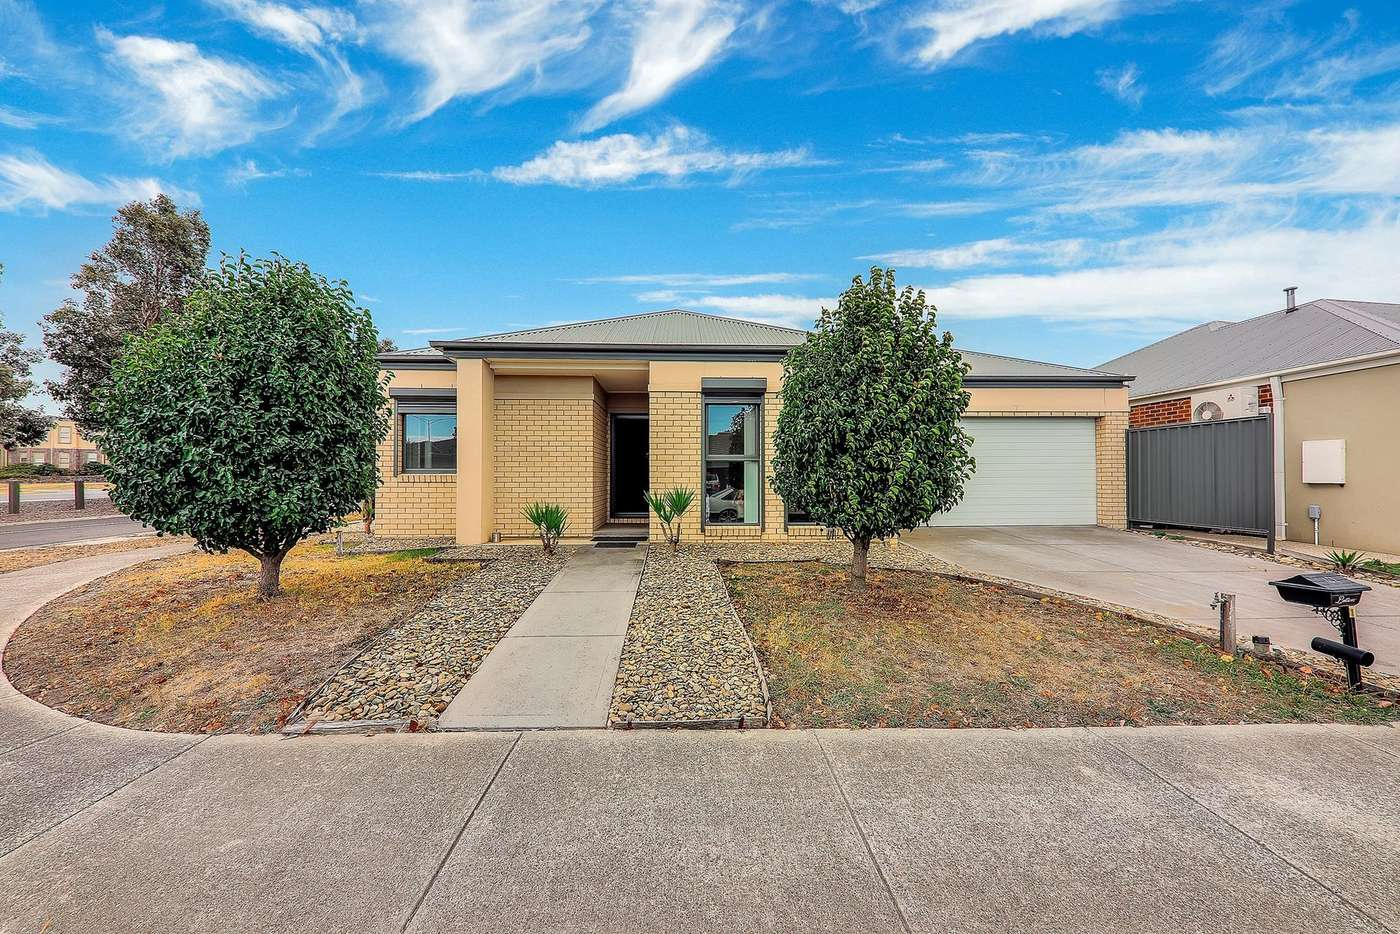 Main view of Homely house listing, 41 Kinglake Crescent, Craigieburn VIC 3064